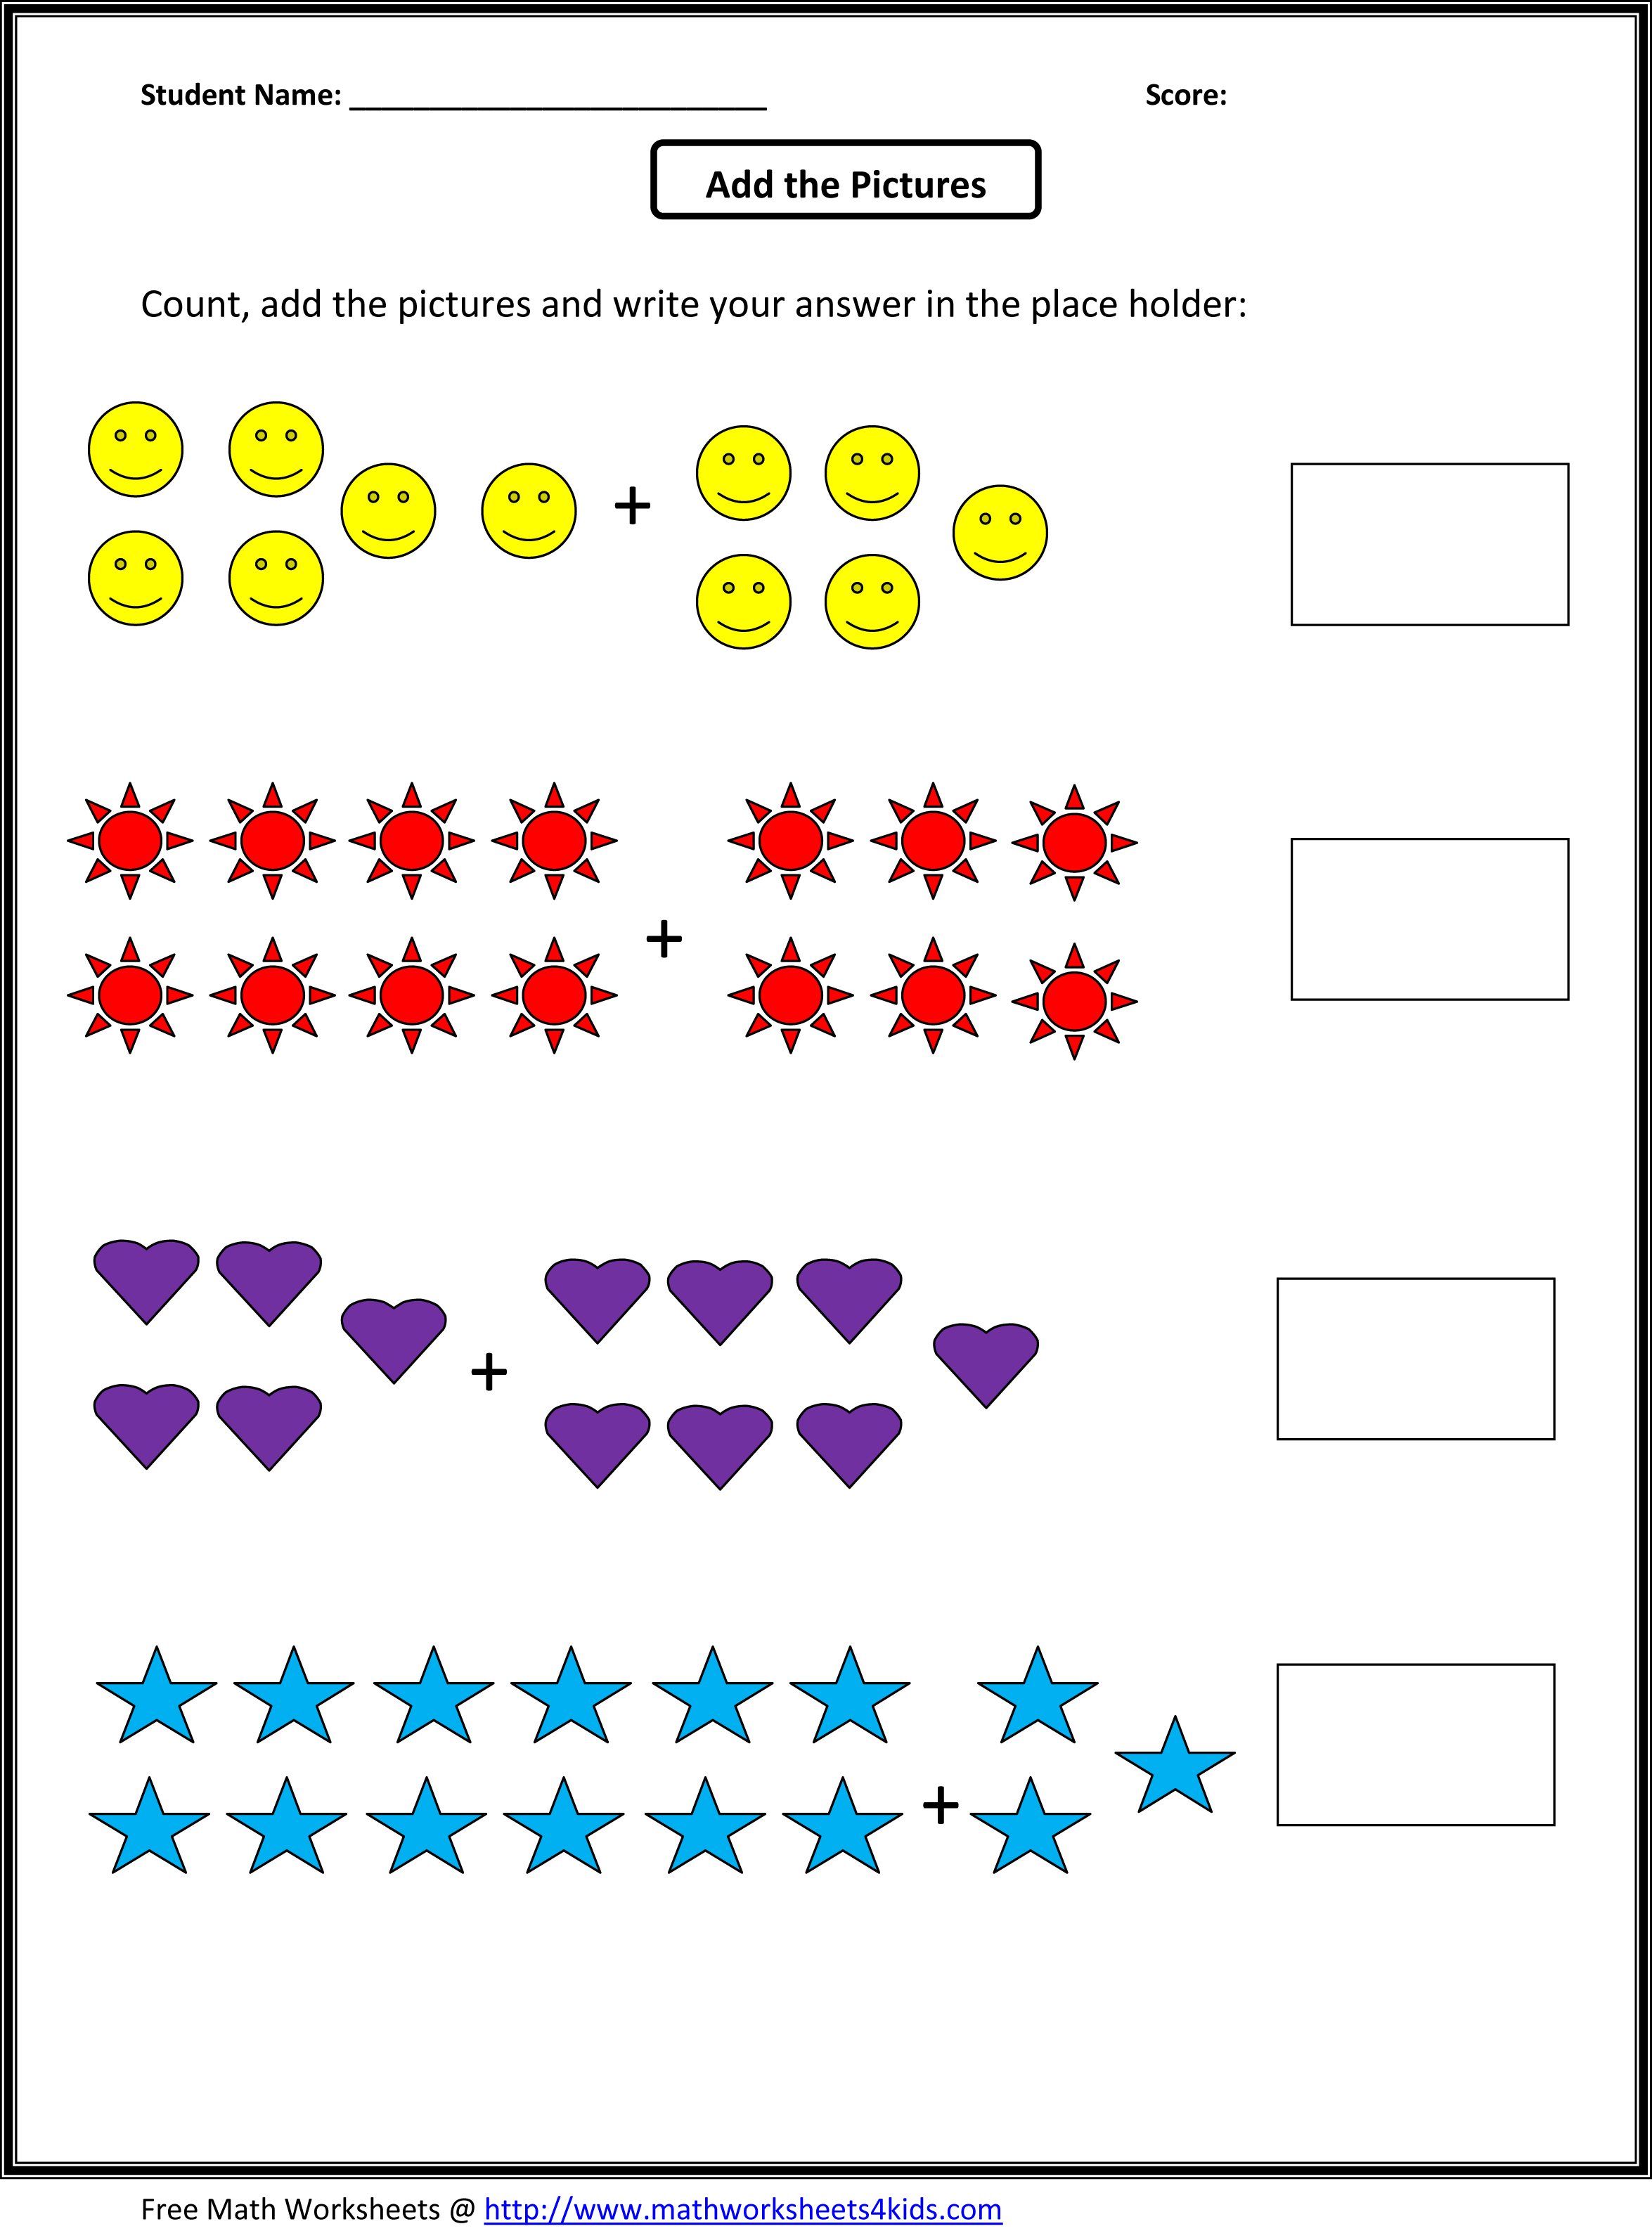 Proatmealus  Ravishing Grade  Maths Worksheet  Reocurent With Heavenly Math Worksheets For St Grade Free  Reocurent With Cute Difference Quotient Worksheet Also Prime And Composite Worksheet In Addition Shakespeare Worksheets And Capitalization Worksheets Middle School As Well As Gas Laws Worksheet Answer Key Additionally Letter J Worksheet From Reocurentcom With Proatmealus  Heavenly Grade  Maths Worksheet  Reocurent With Cute Math Worksheets For St Grade Free  Reocurent And Ravishing Difference Quotient Worksheet Also Prime And Composite Worksheet In Addition Shakespeare Worksheets From Reocurentcom